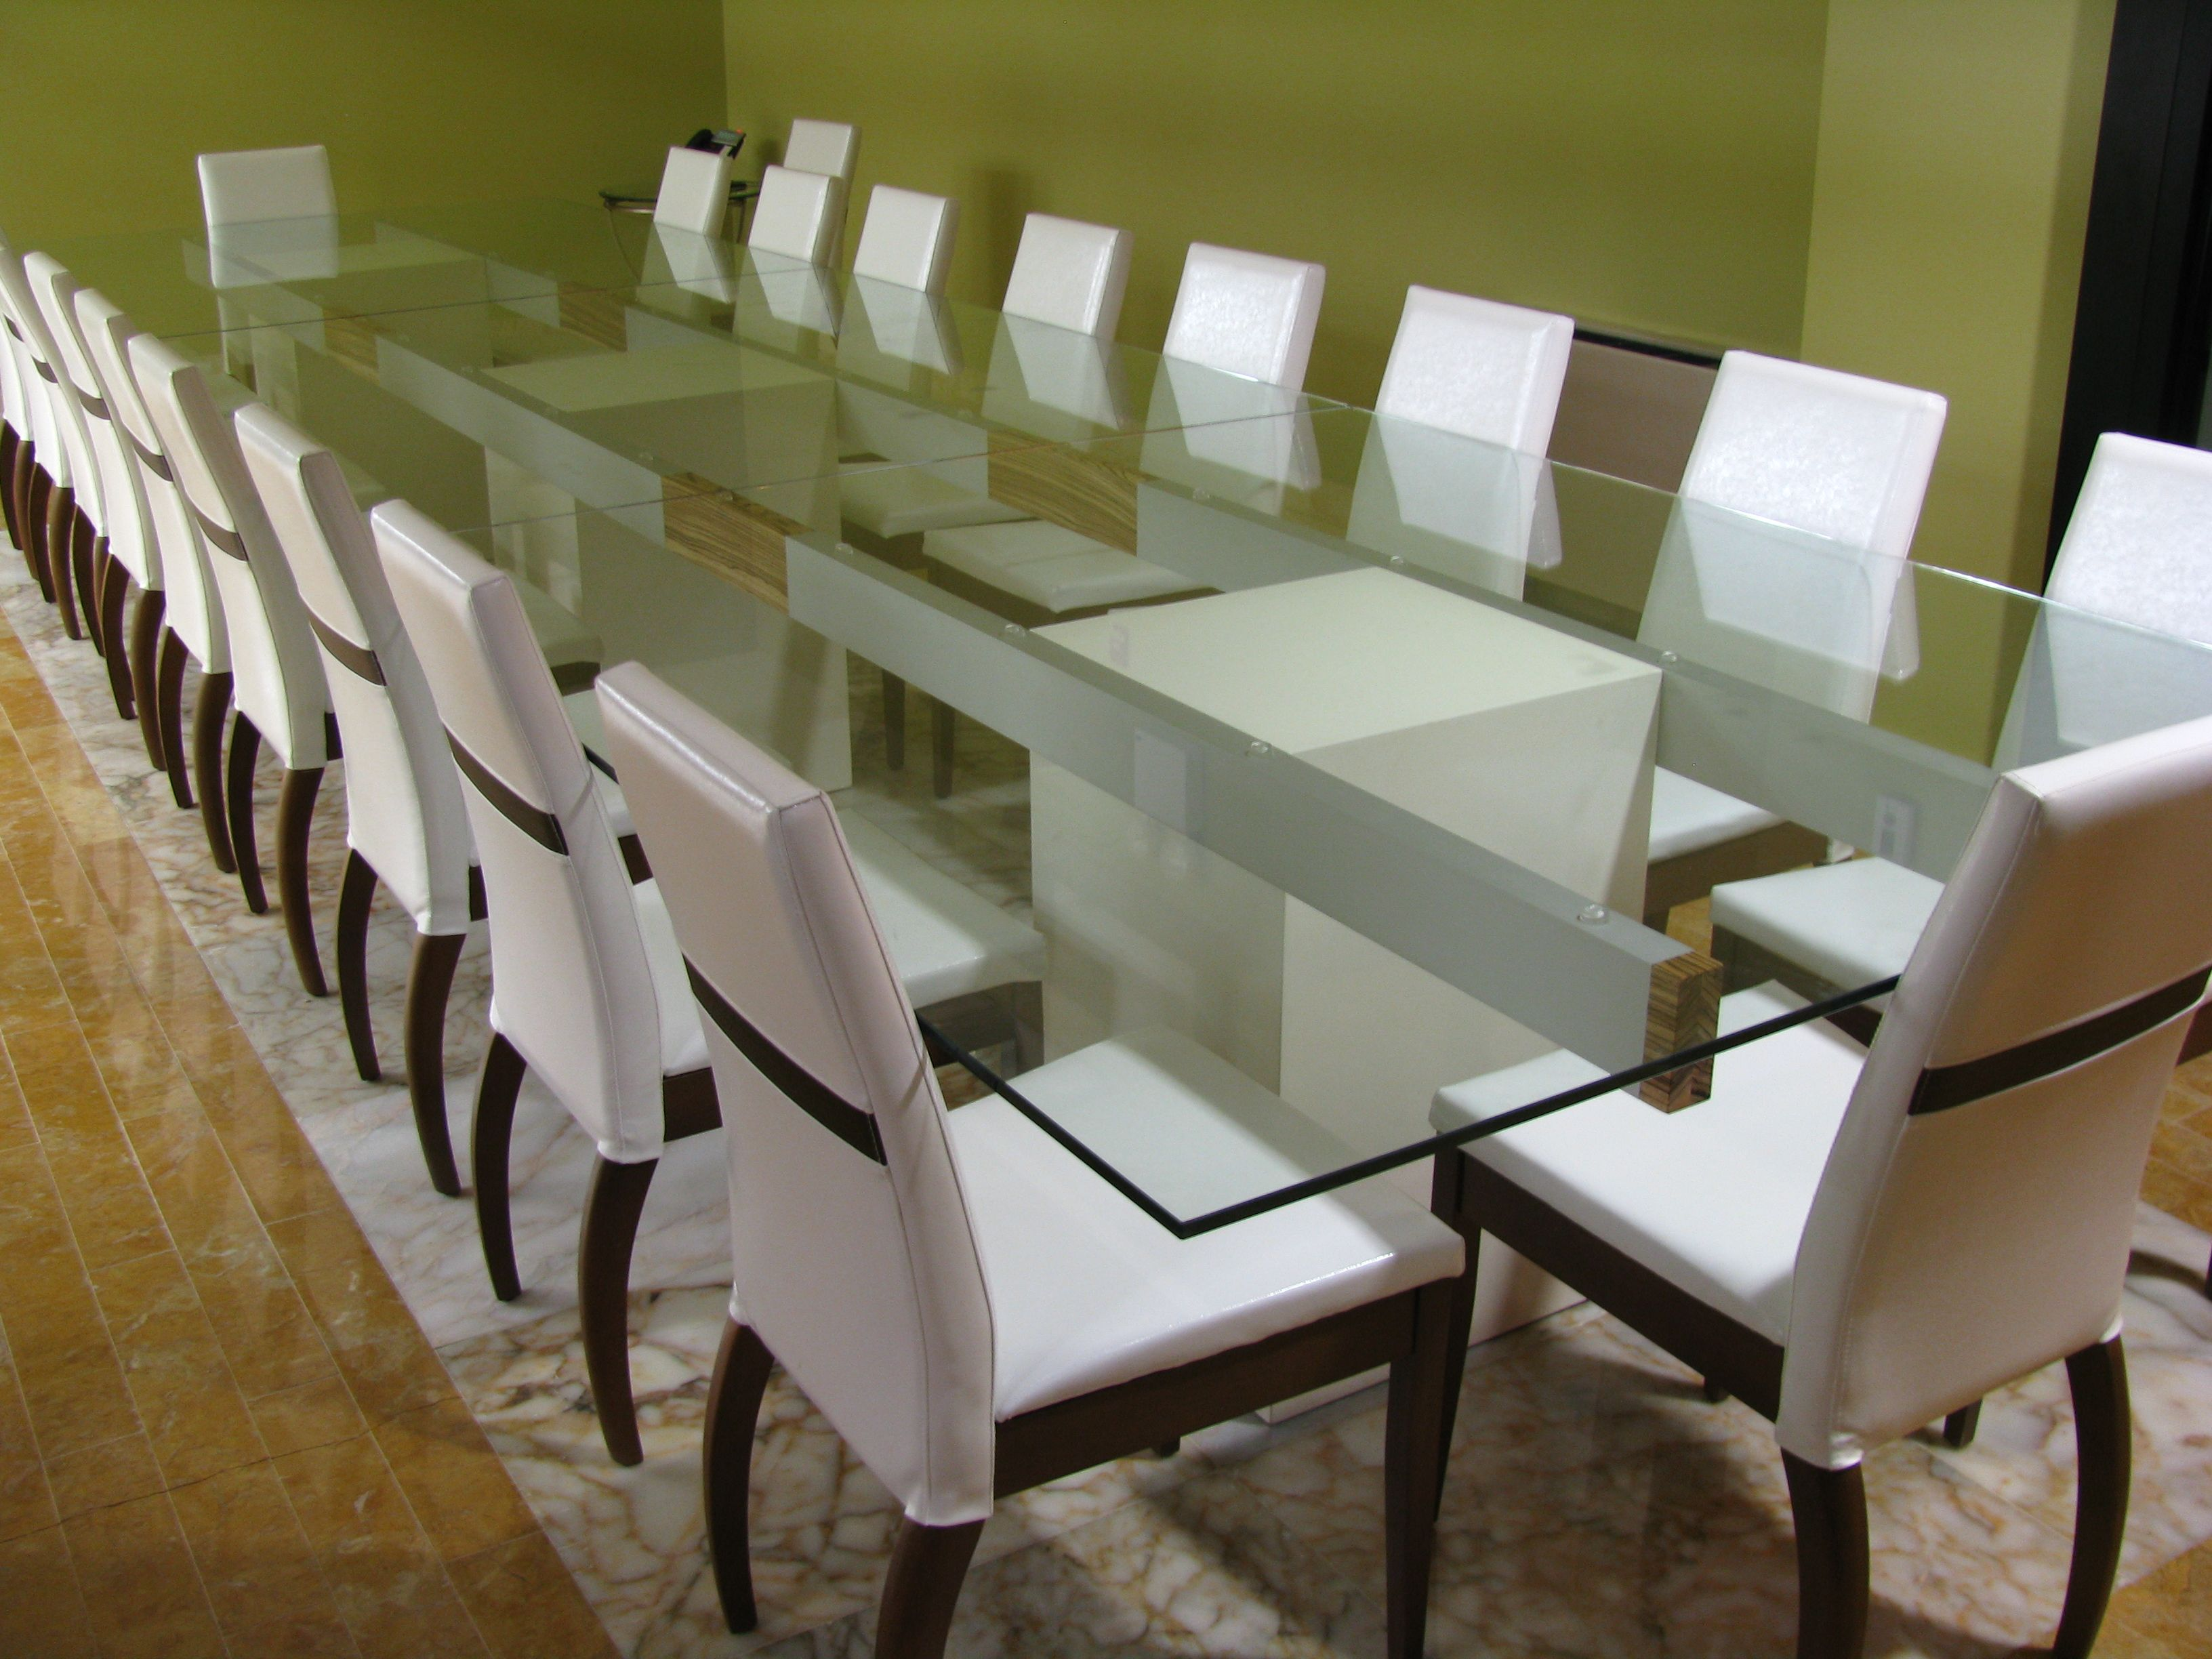 Pin By Alliusta On Custom Glass Conference Table Pinterest - Custom glass conference table